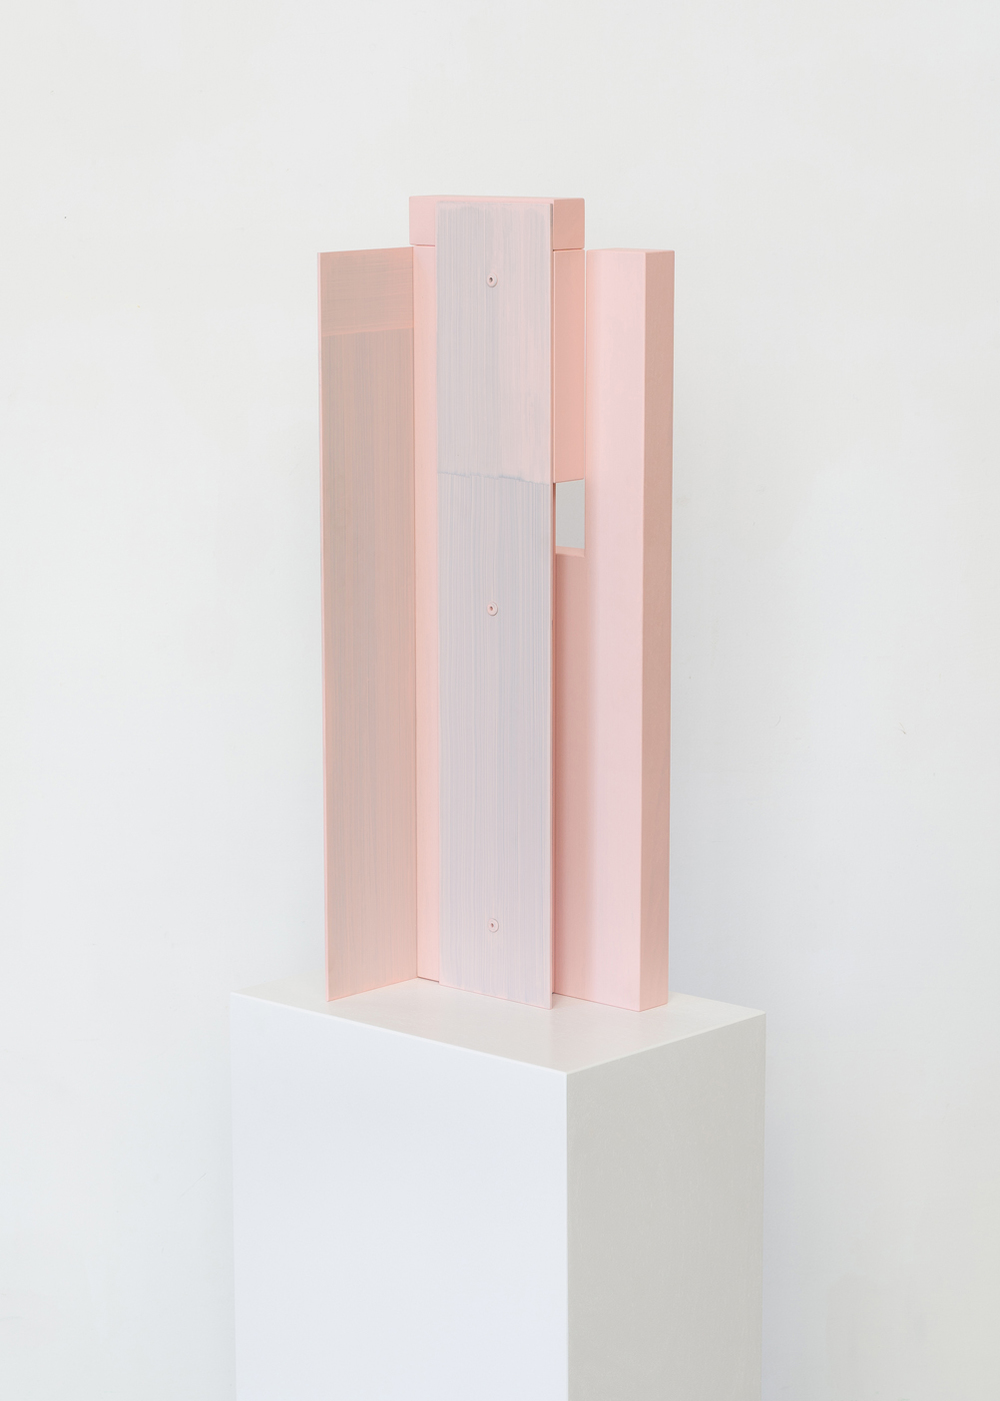 Untitled (Rose) 2015 Euro Beech hardwood, steel, aluminium rivets, acrylic 55.8 x 20.3 x 20.3 cm / 22 x 8 x 8in